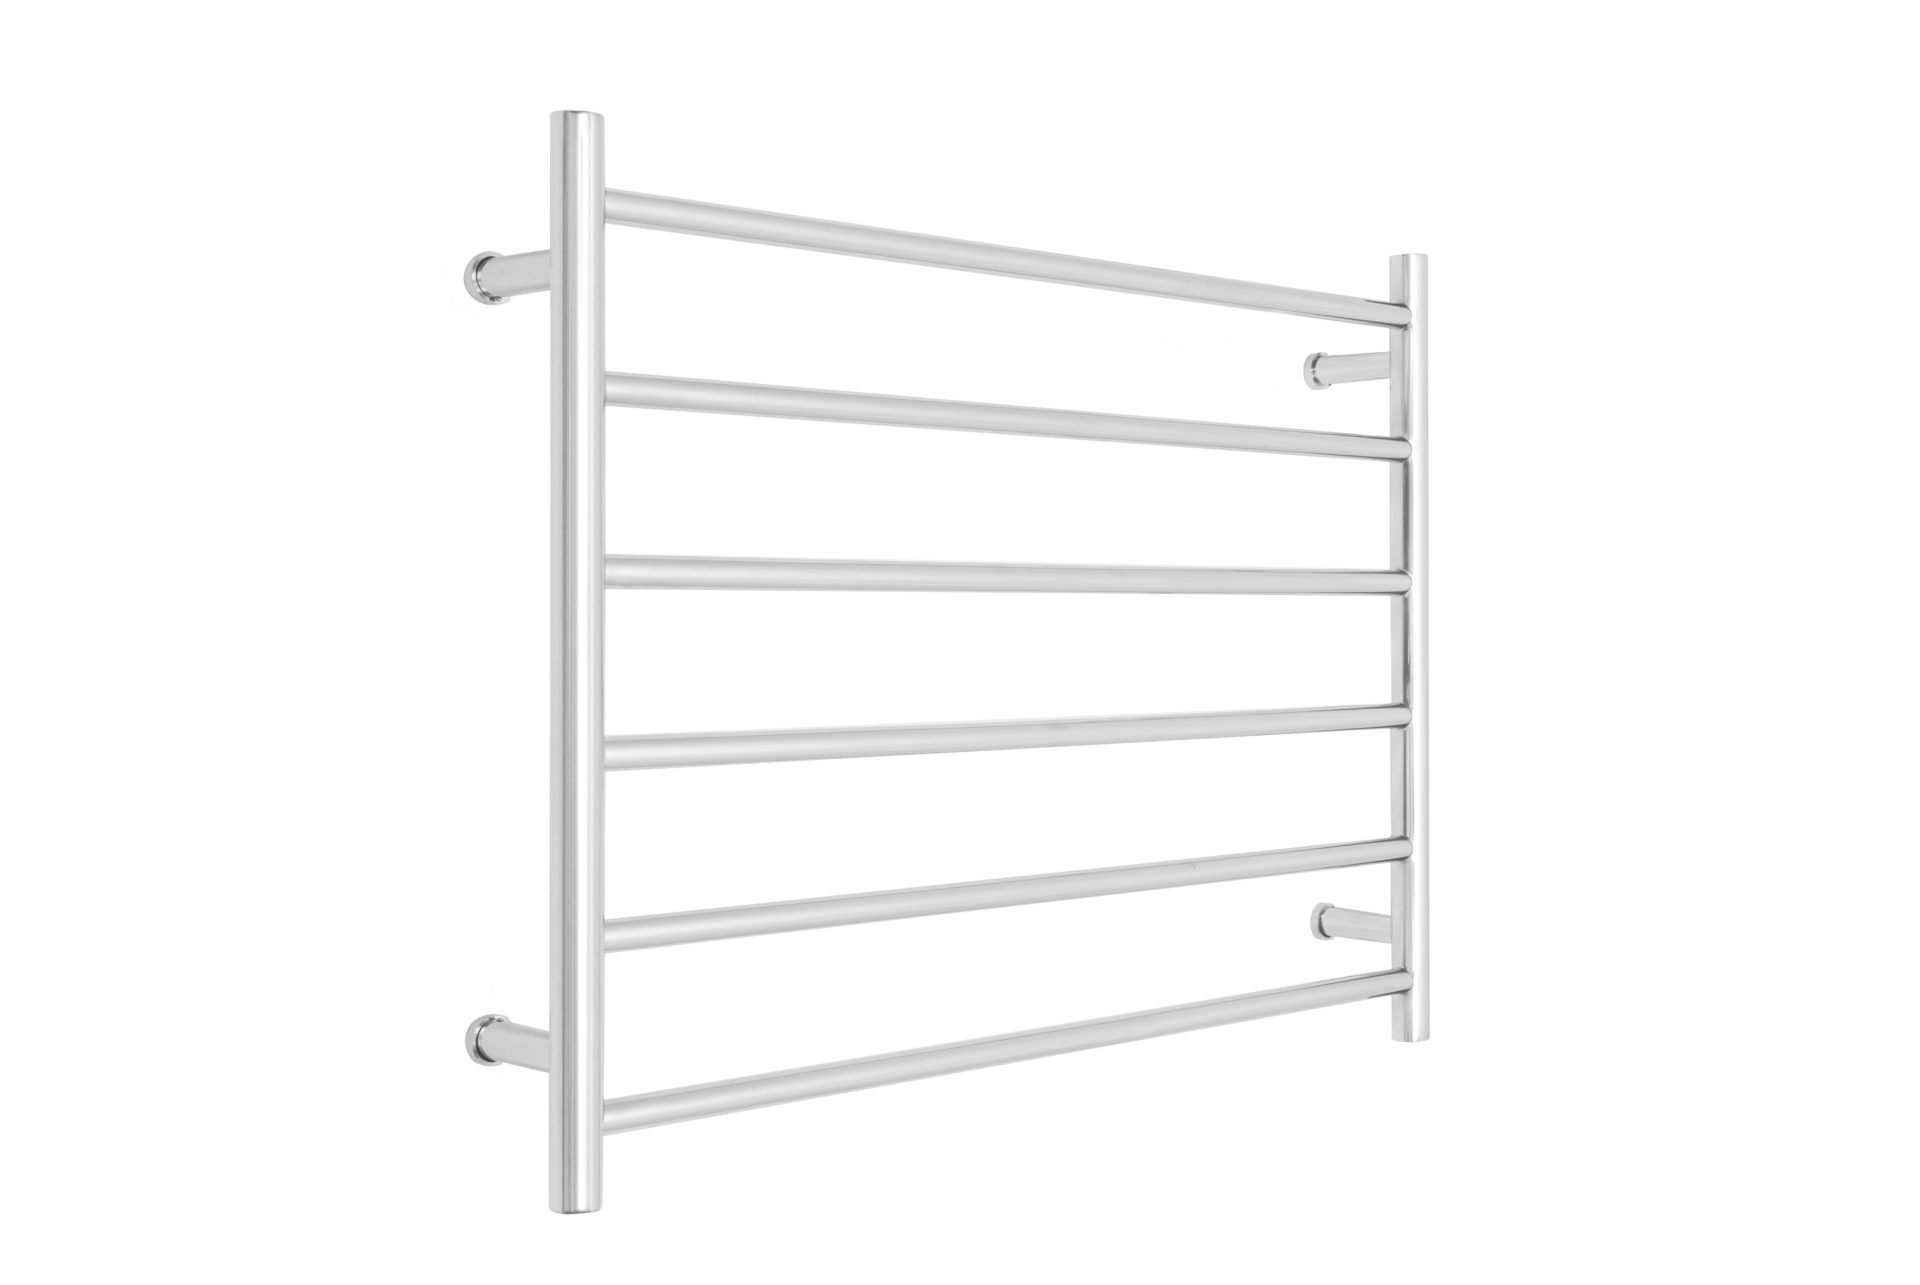 Allegra 6 Bar Wide Heated Towel Rail- Chrome